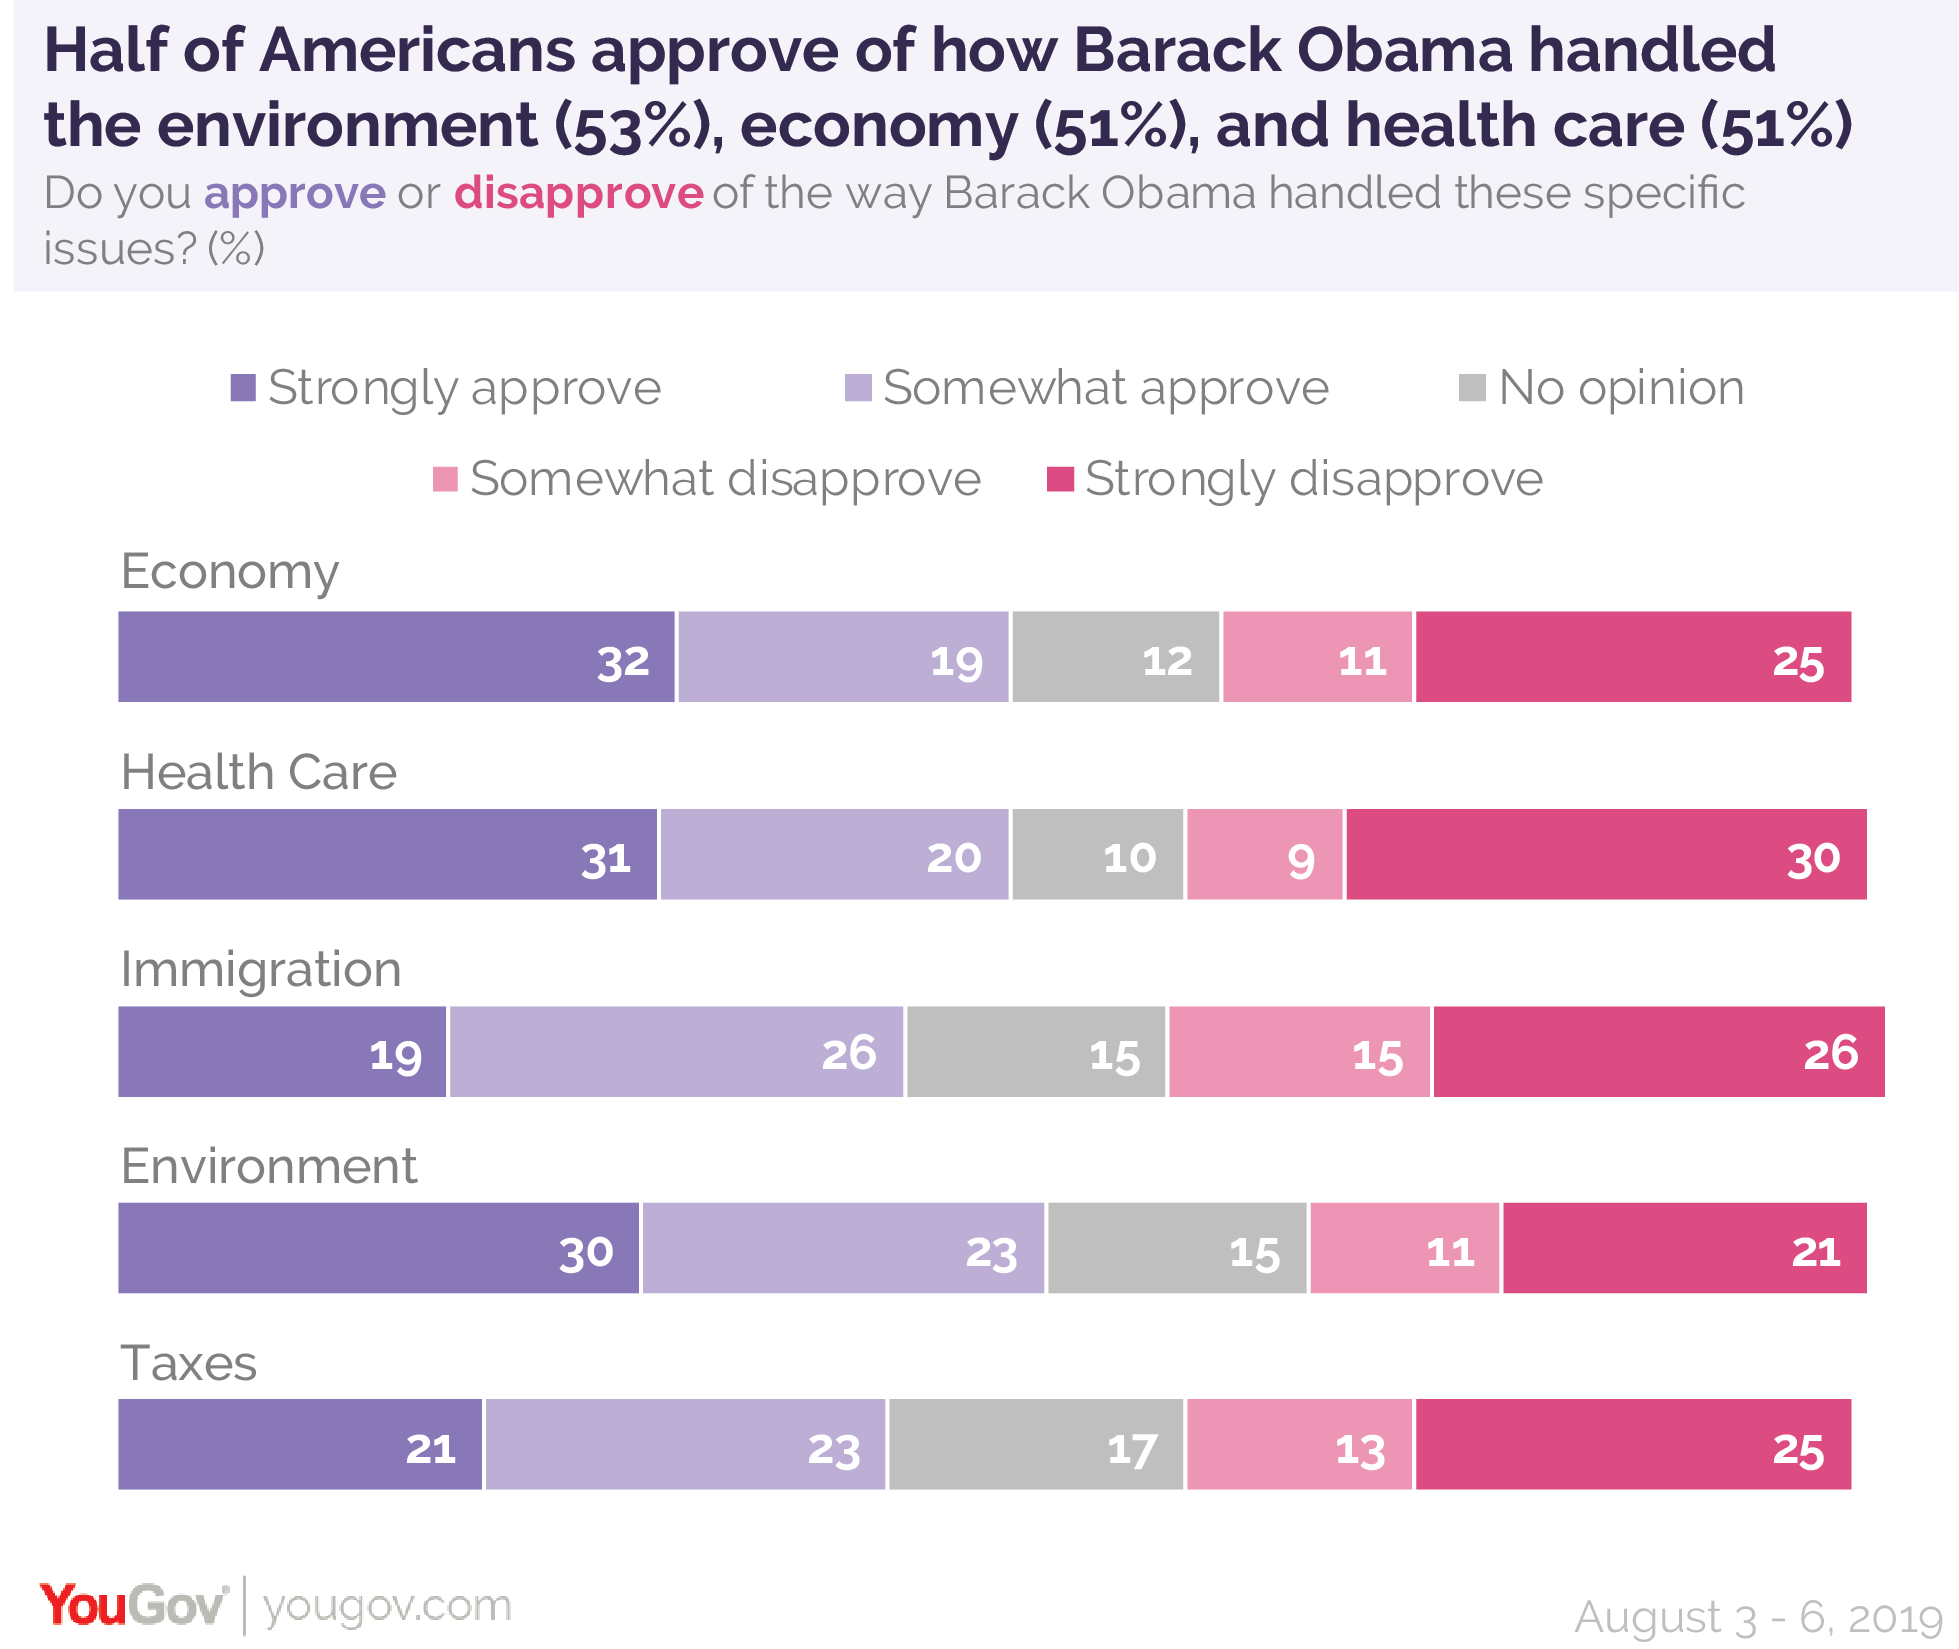 Half of Americans approve of how Barack Obama handled the environment, economy, and healthcare during his presidency